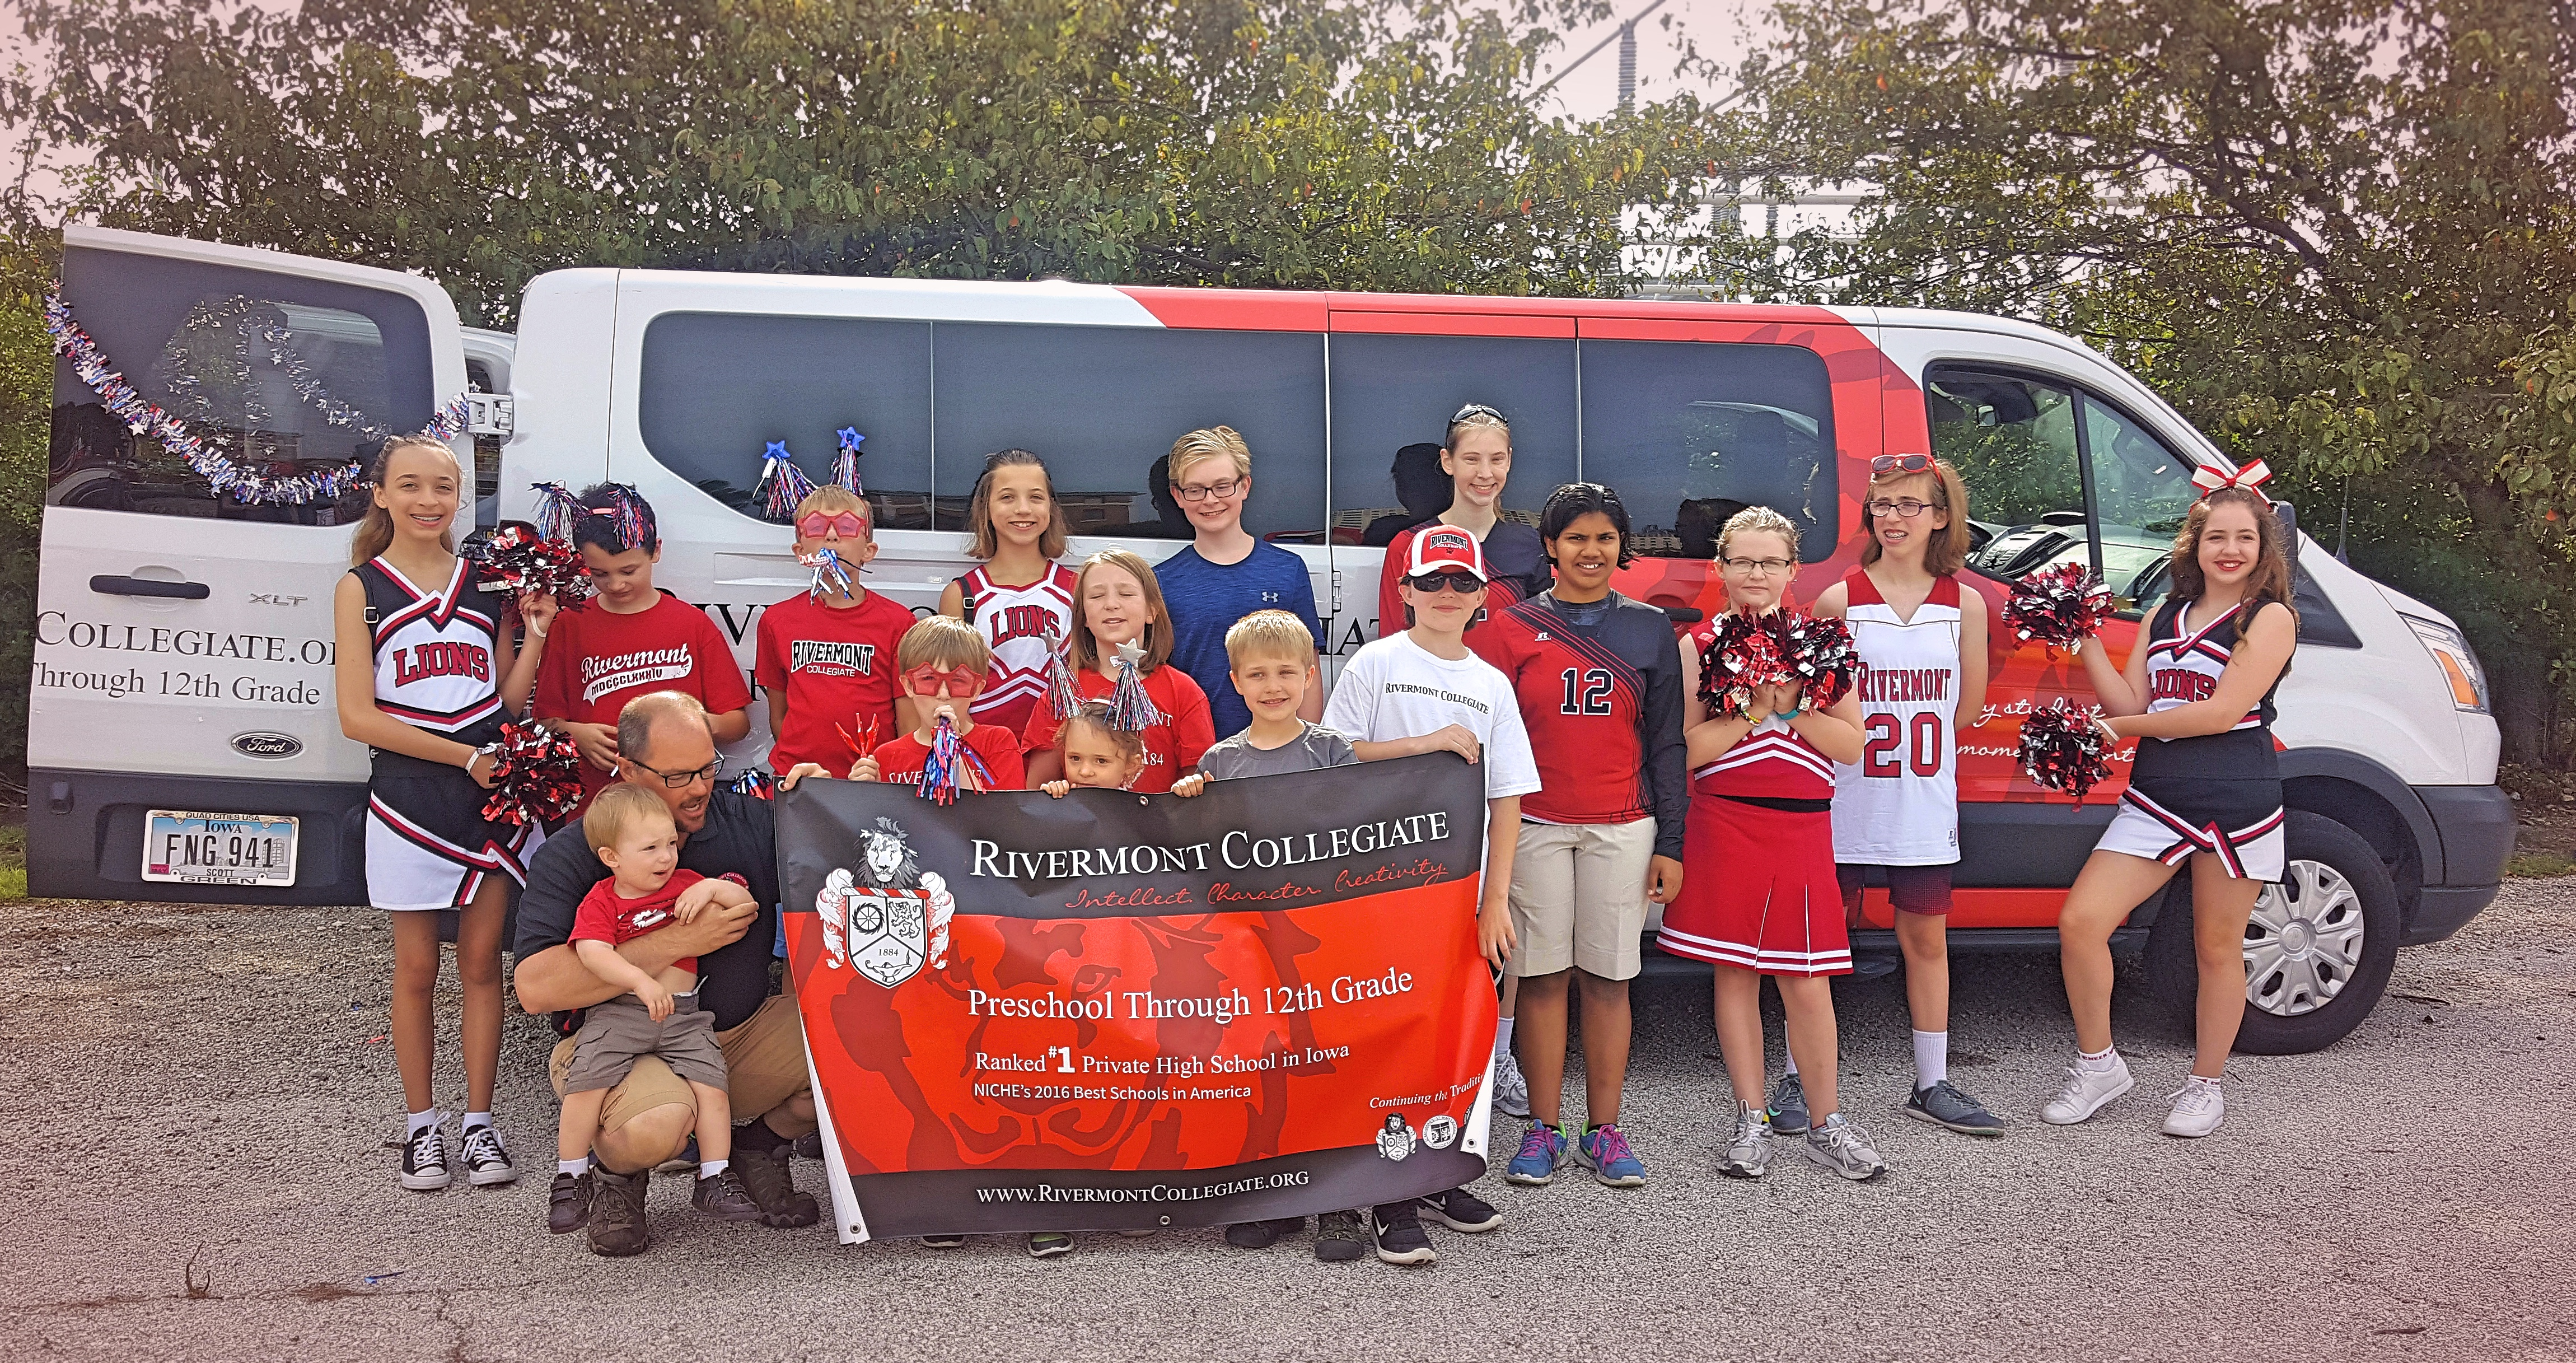 Rivermont students standing in front of the school van at the July 4th parade